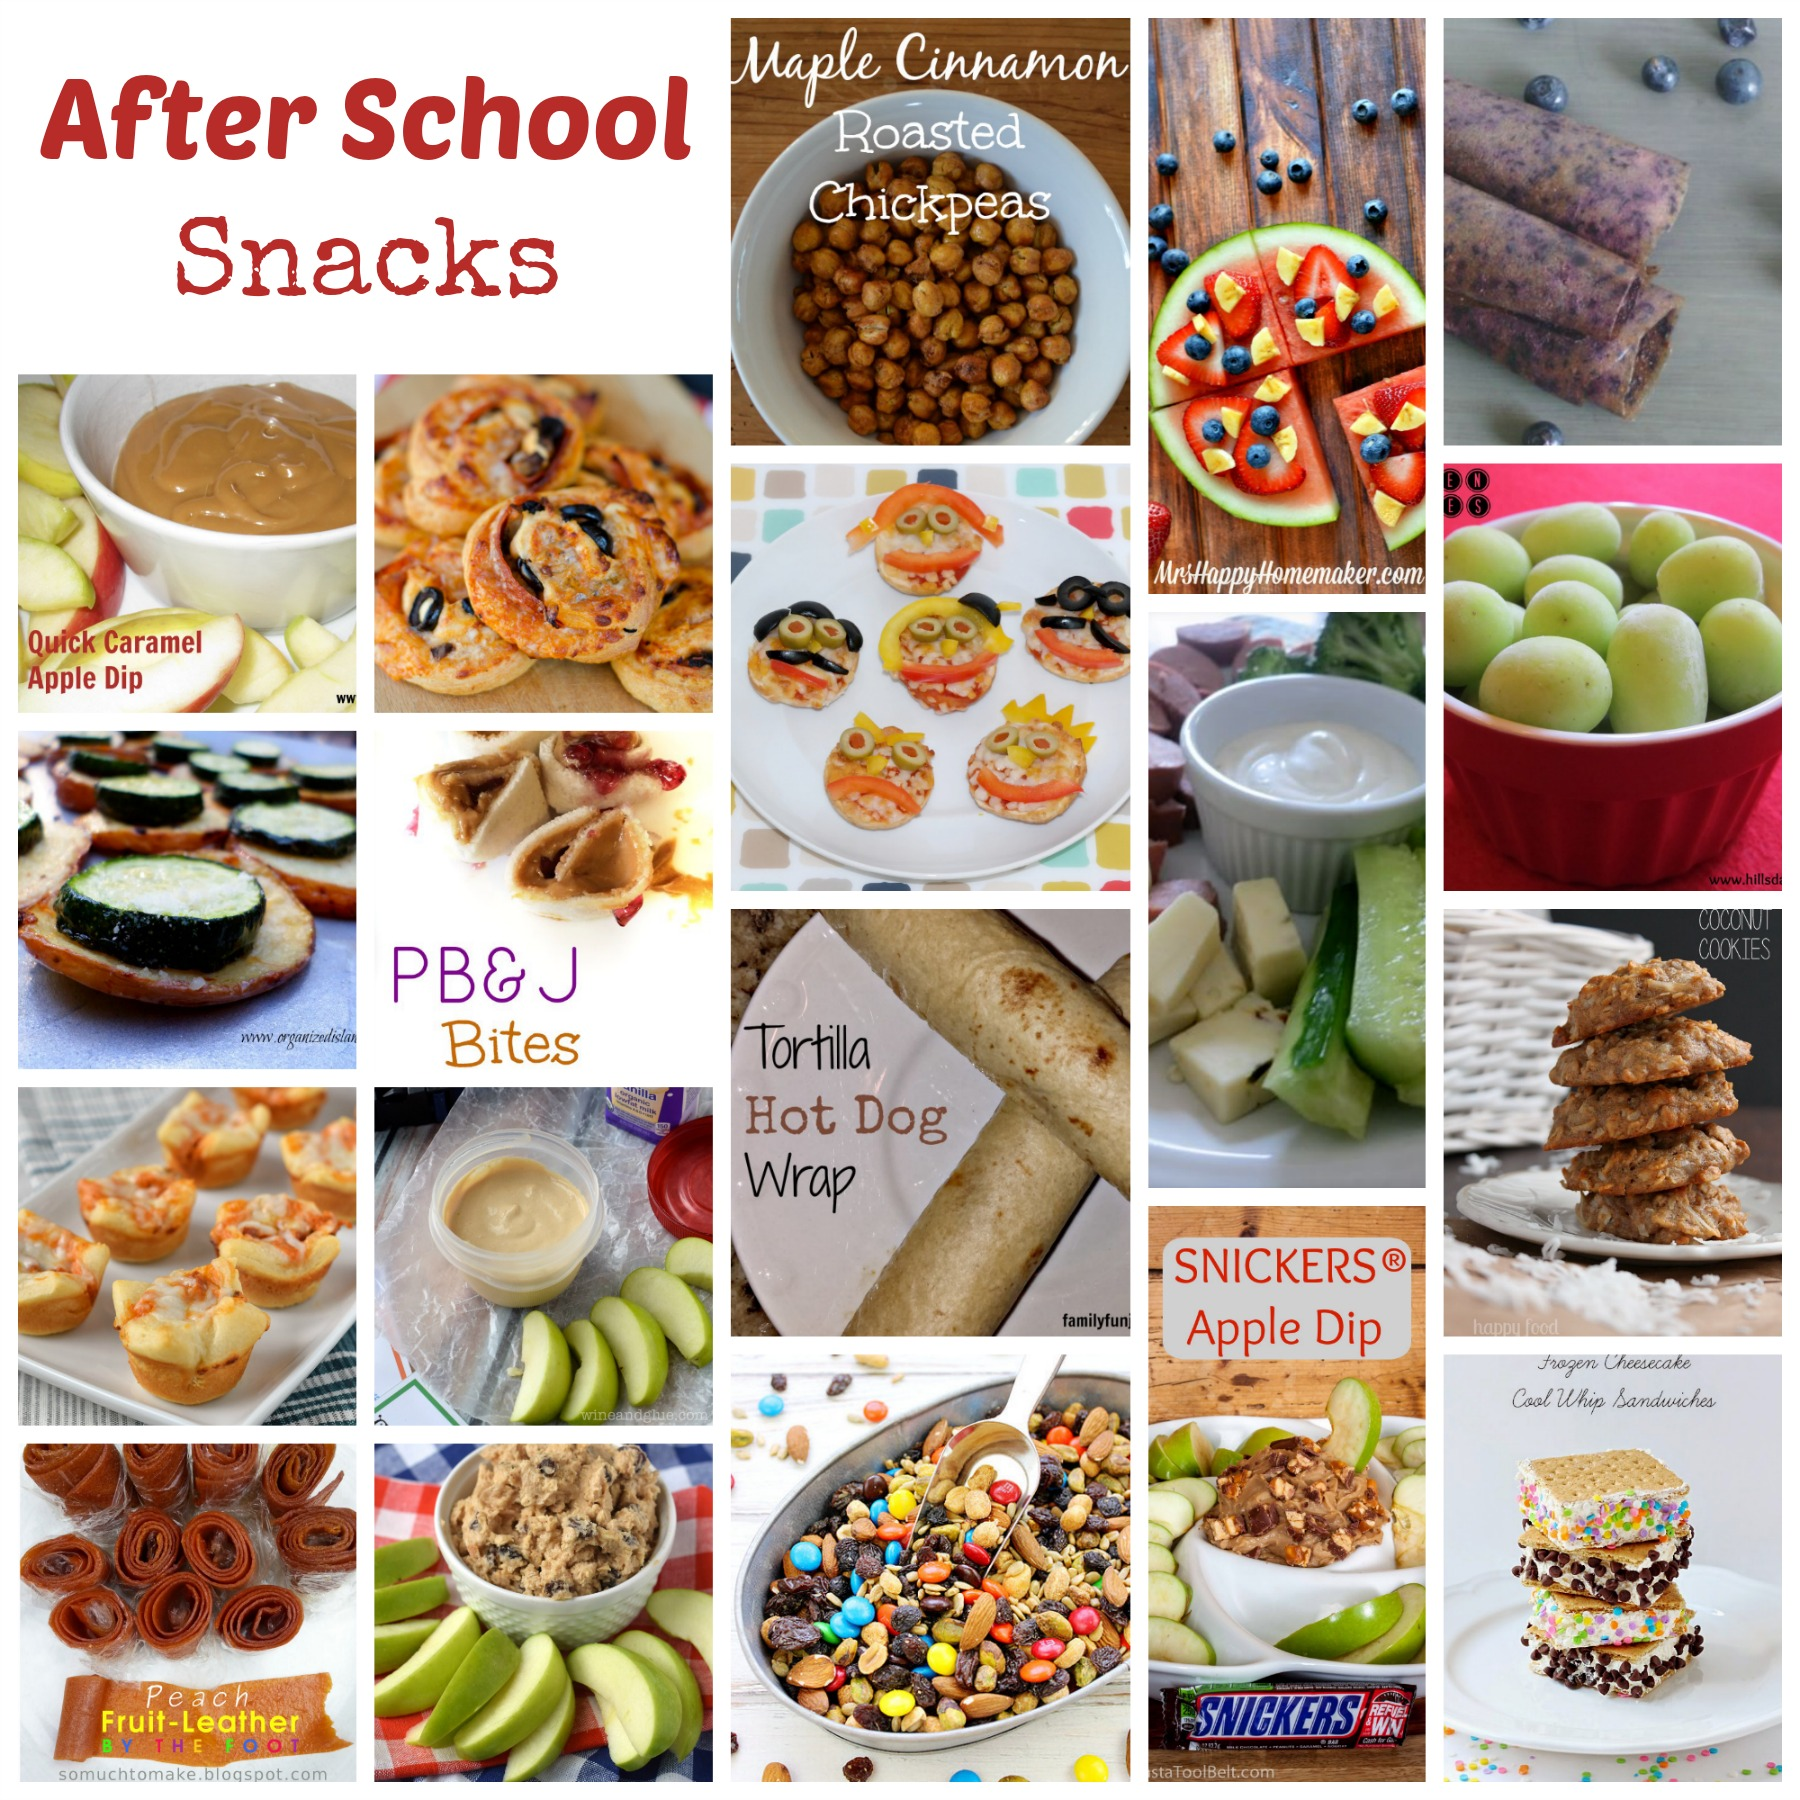 Fun ideas for after school snacks.